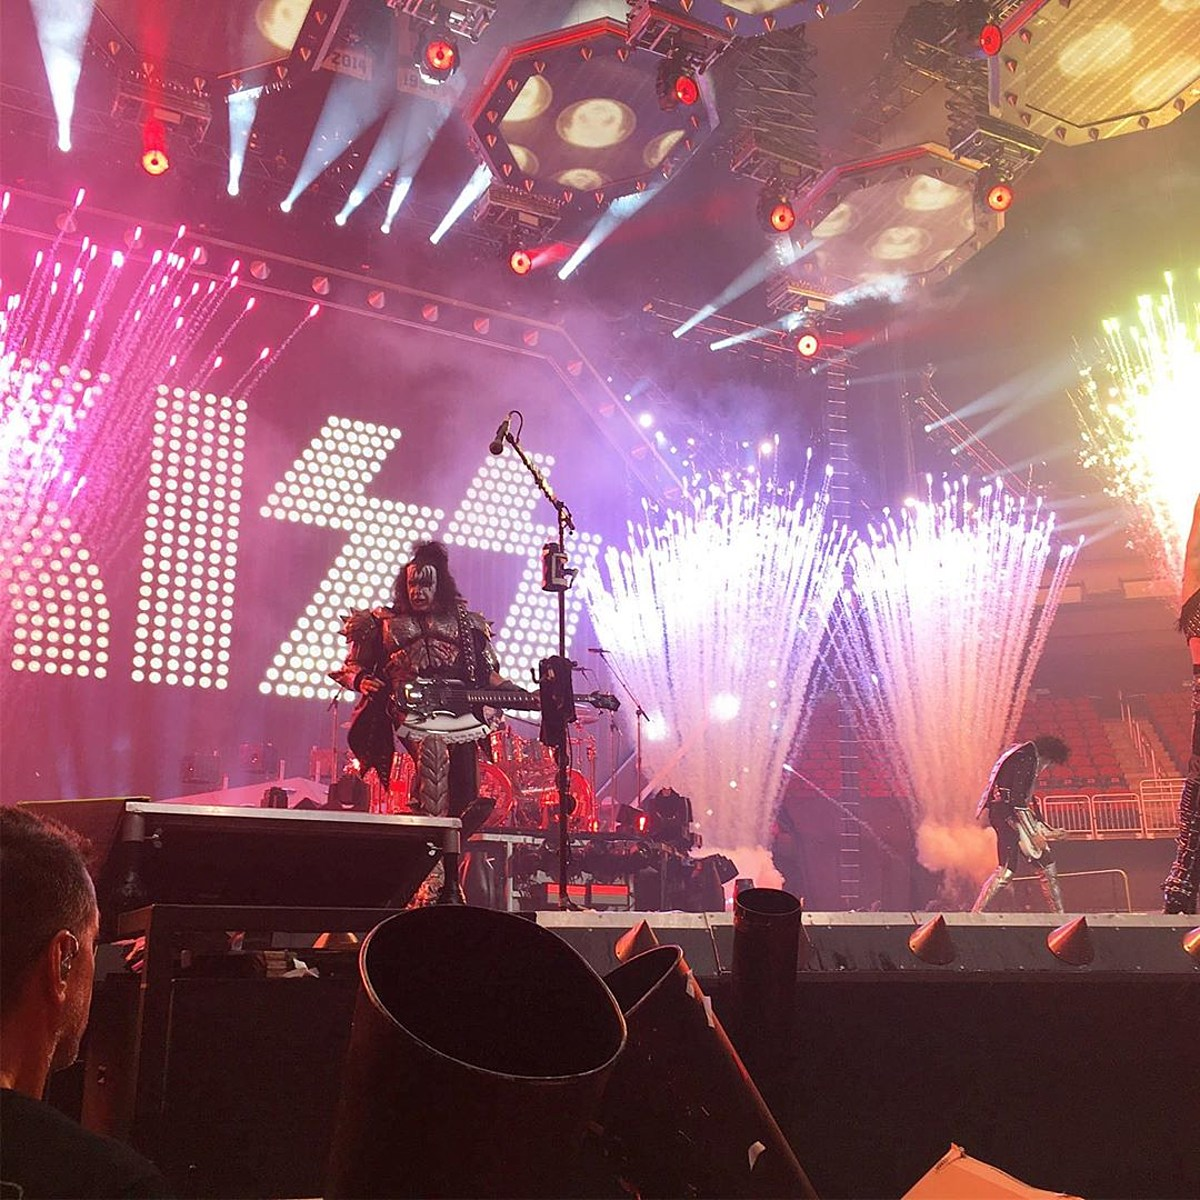 KISS brought hits, pyro, and more to NJ on their farewell tour (review)